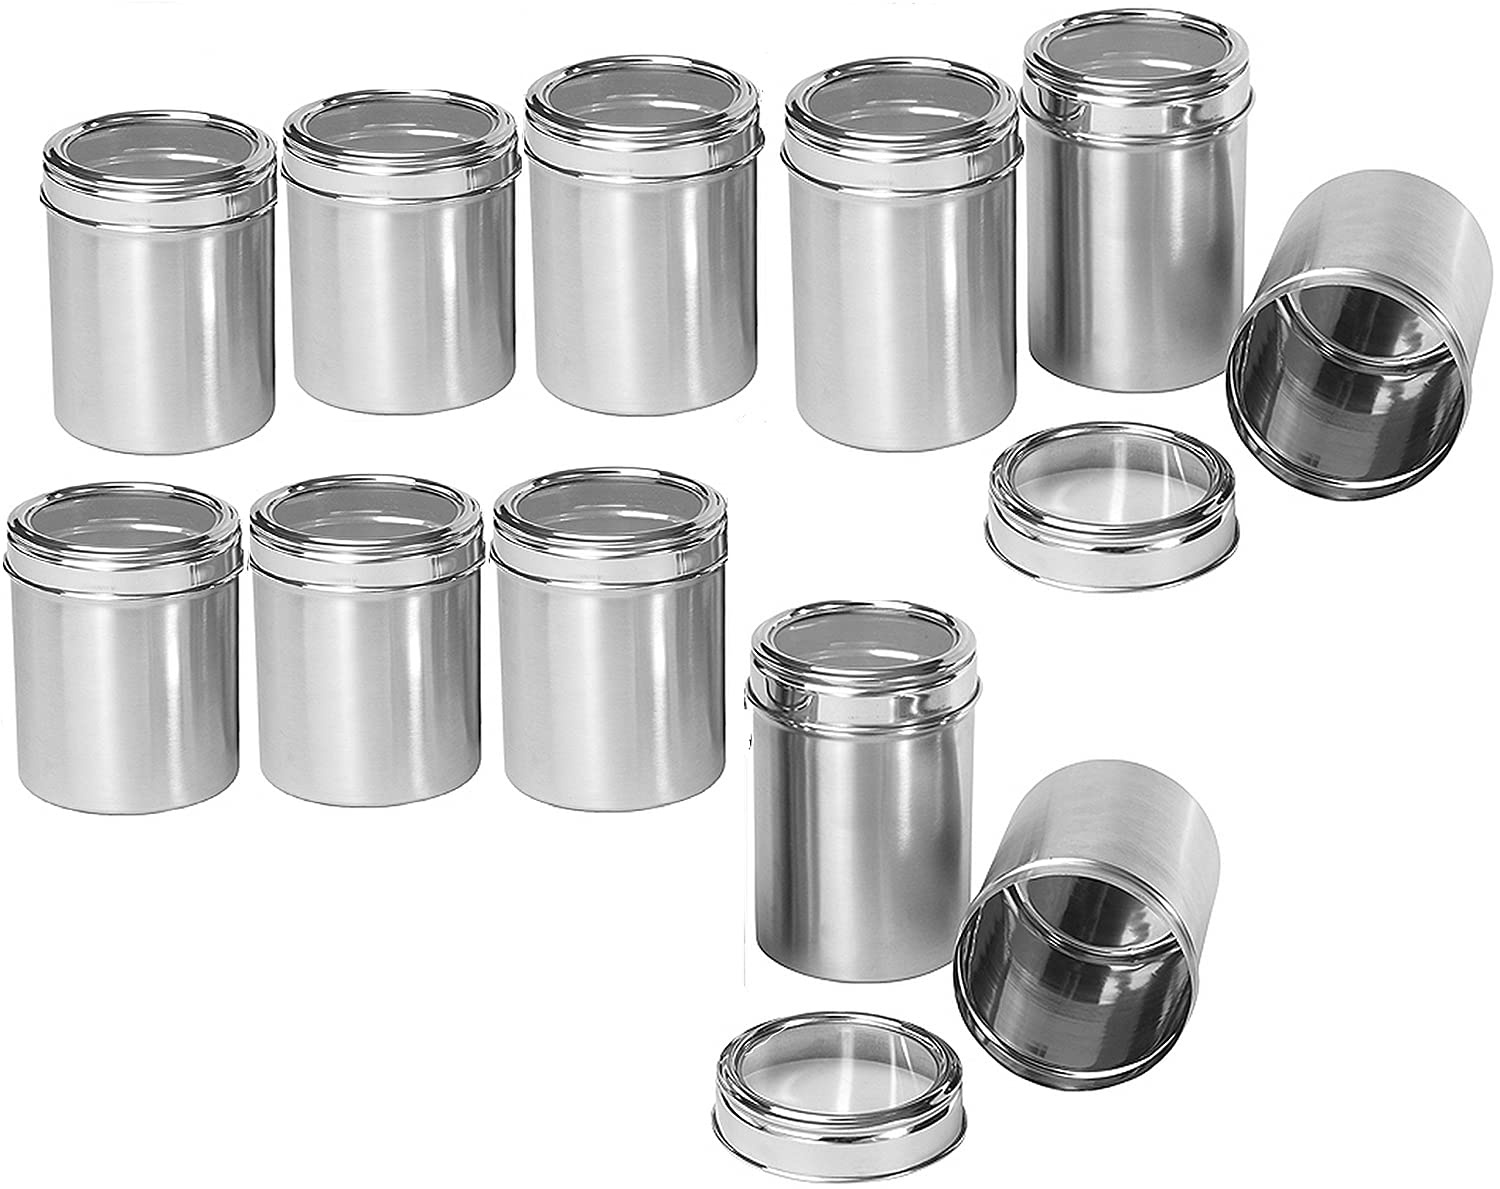 Buy Dynore Stainless Steel Kitchen Storage Canisters With See